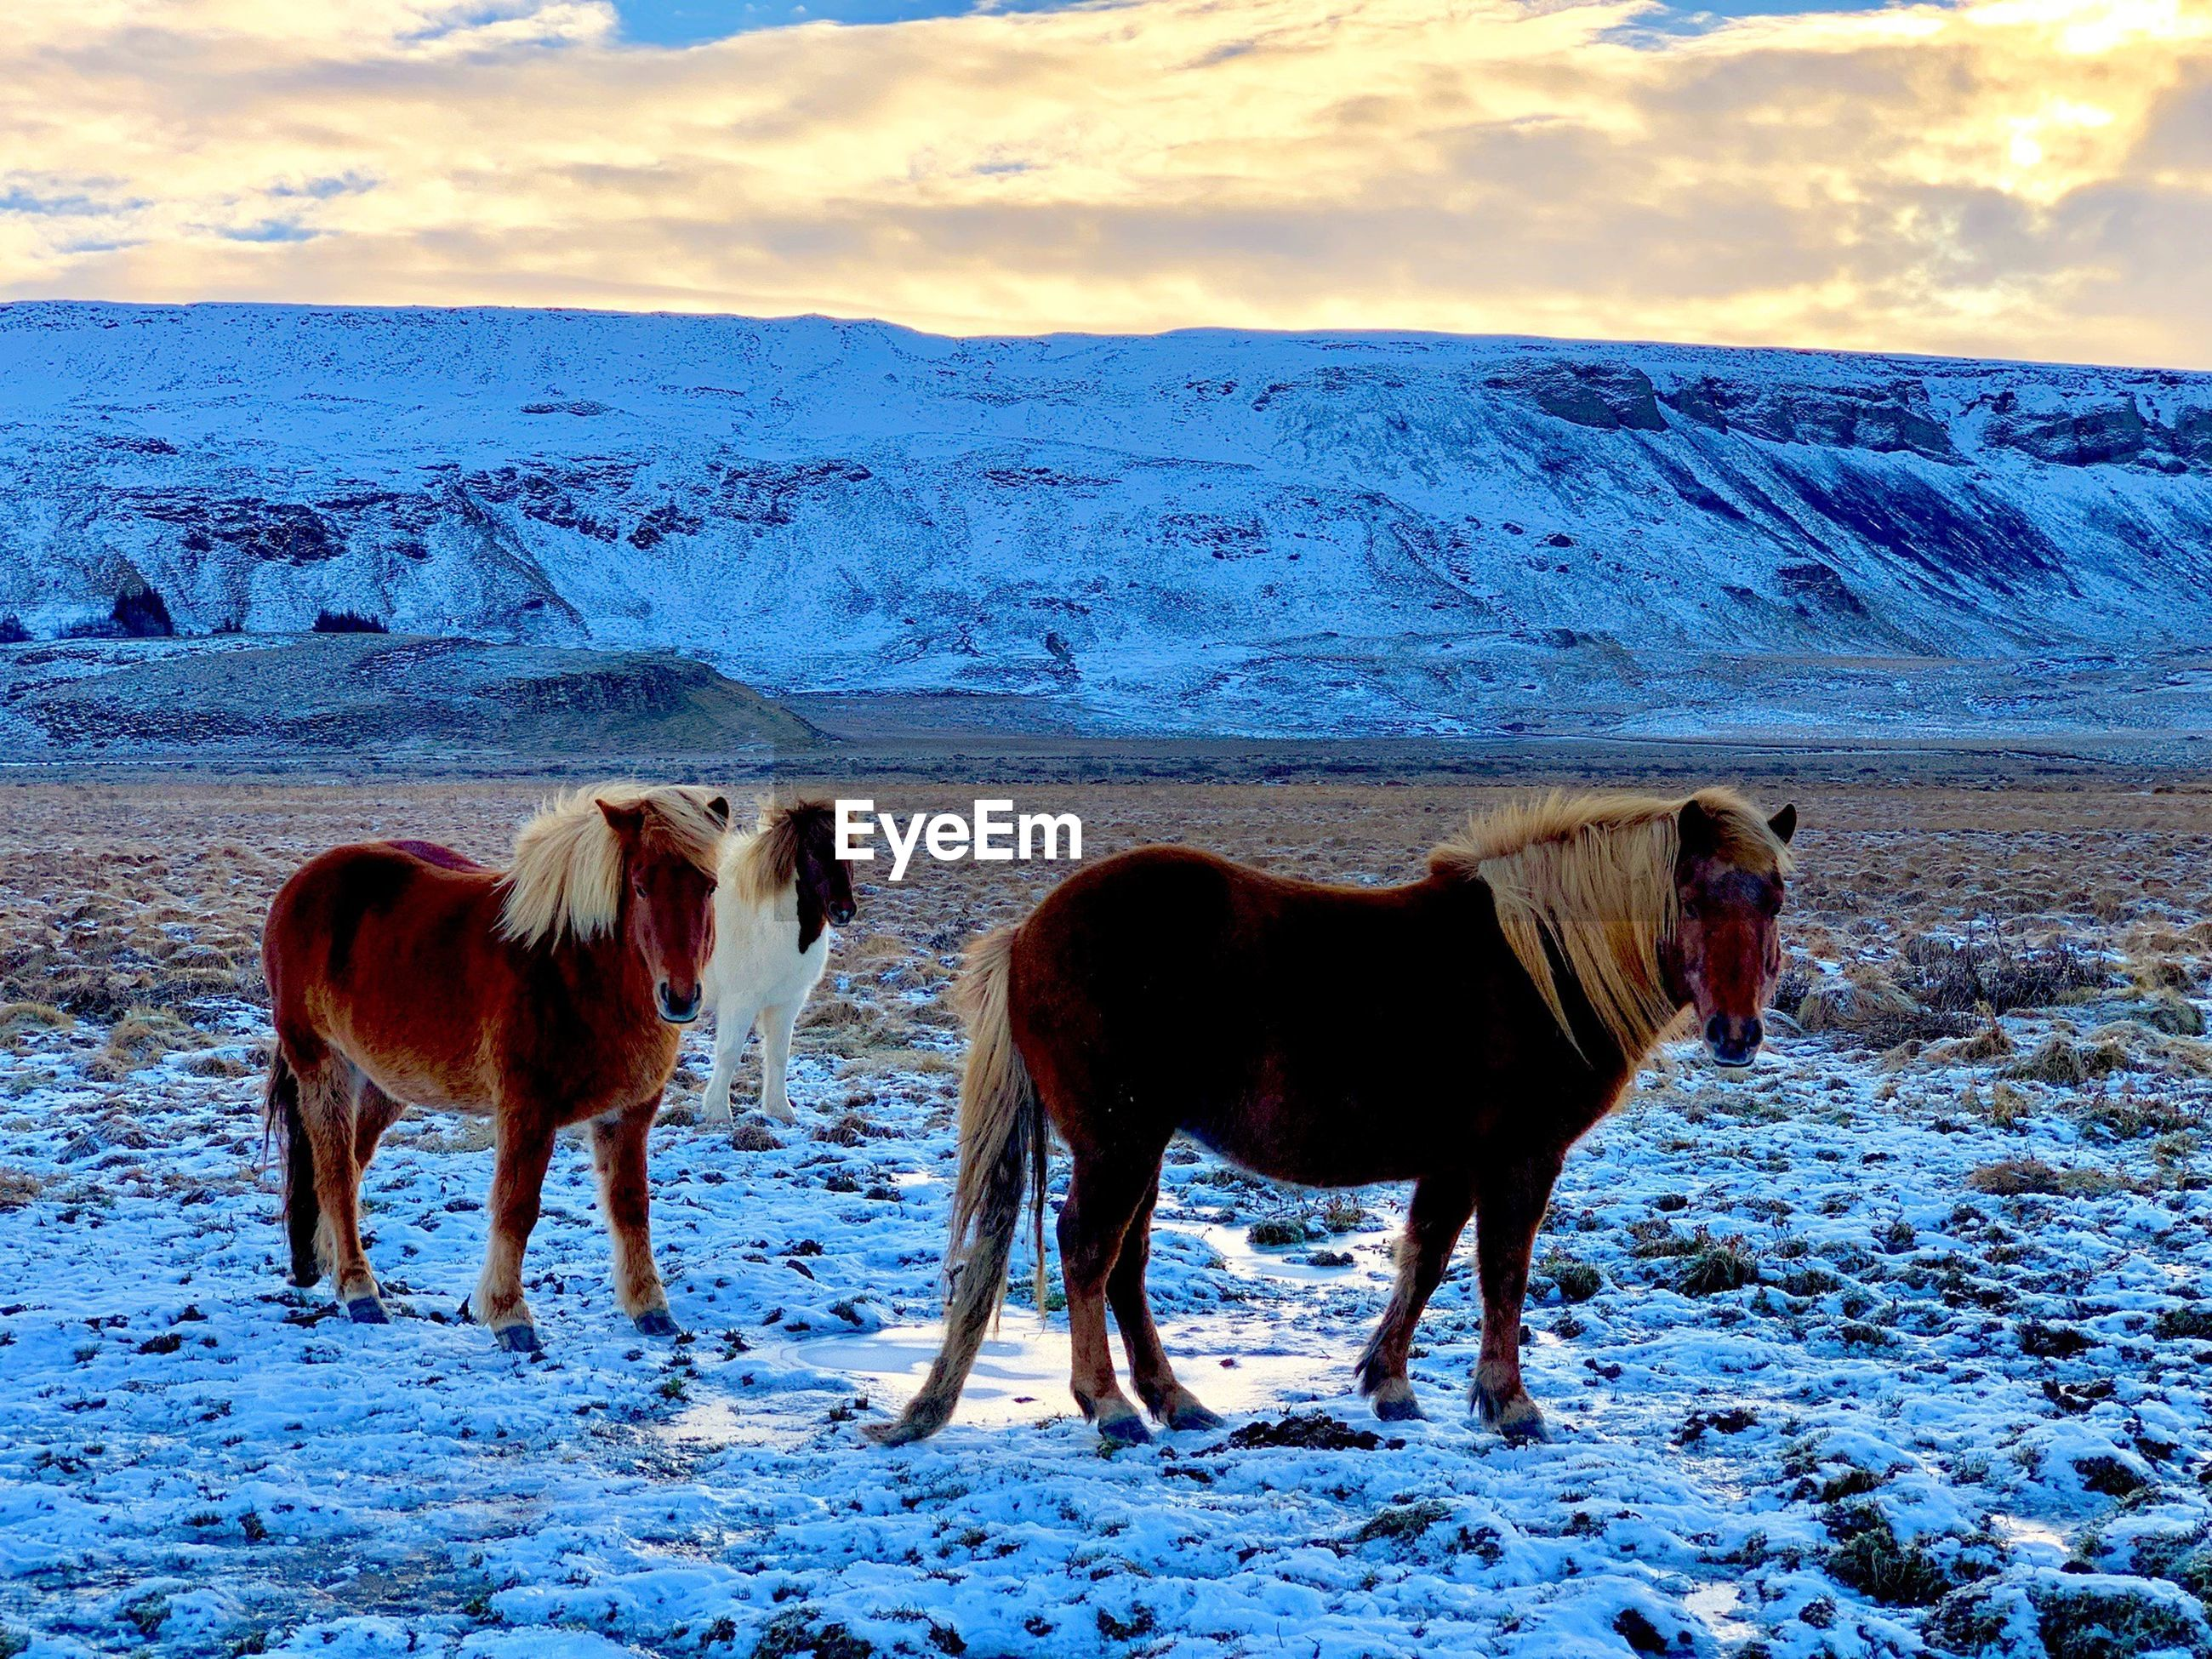 HORSES STANDING ON SNOW COVERED LAND AGAINST SKY